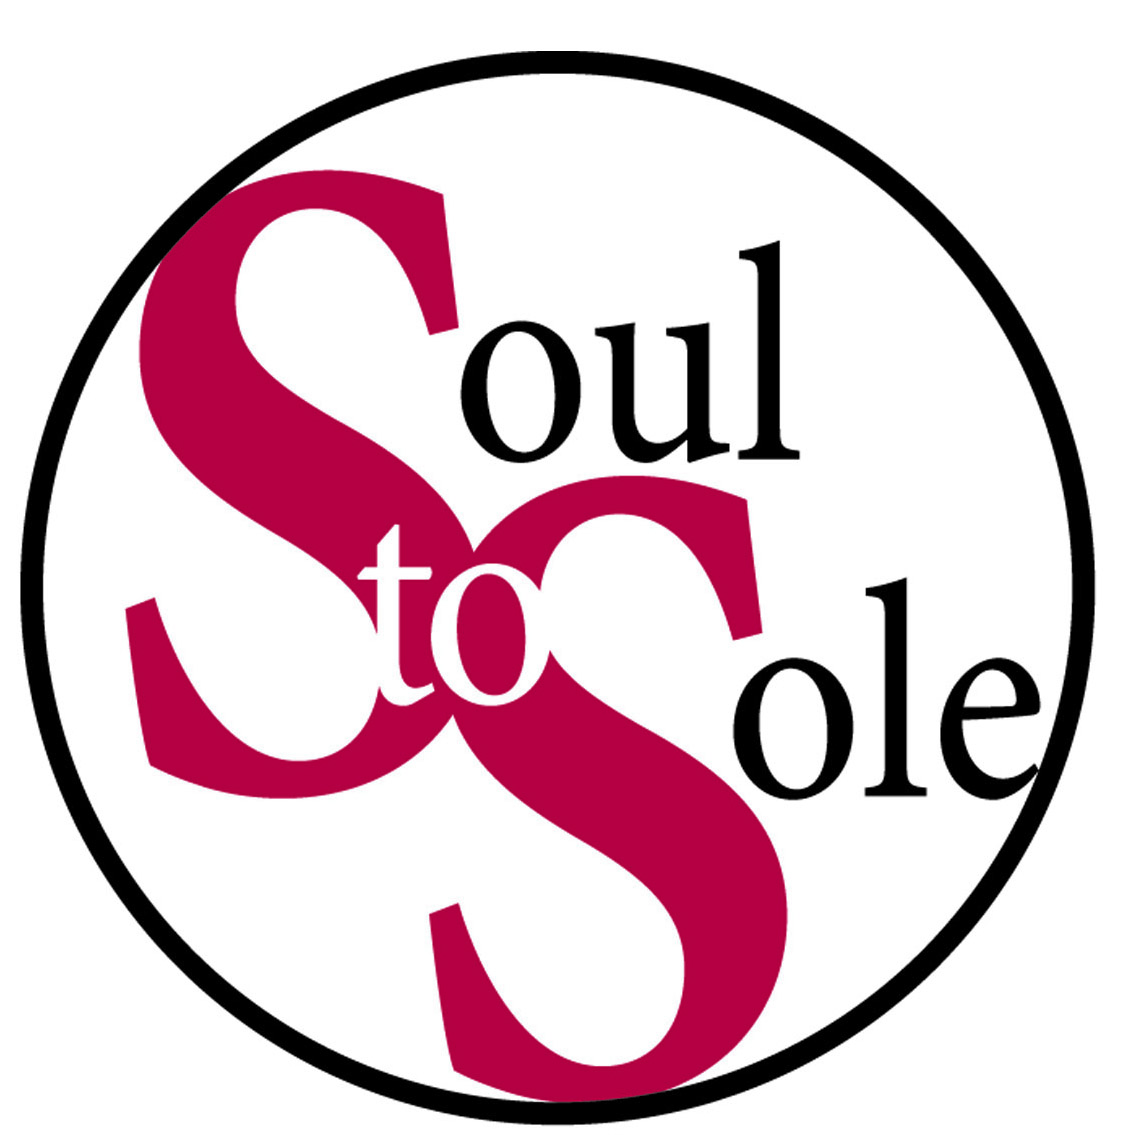 SOULTOSOLE LOGO 1 FOR ICON